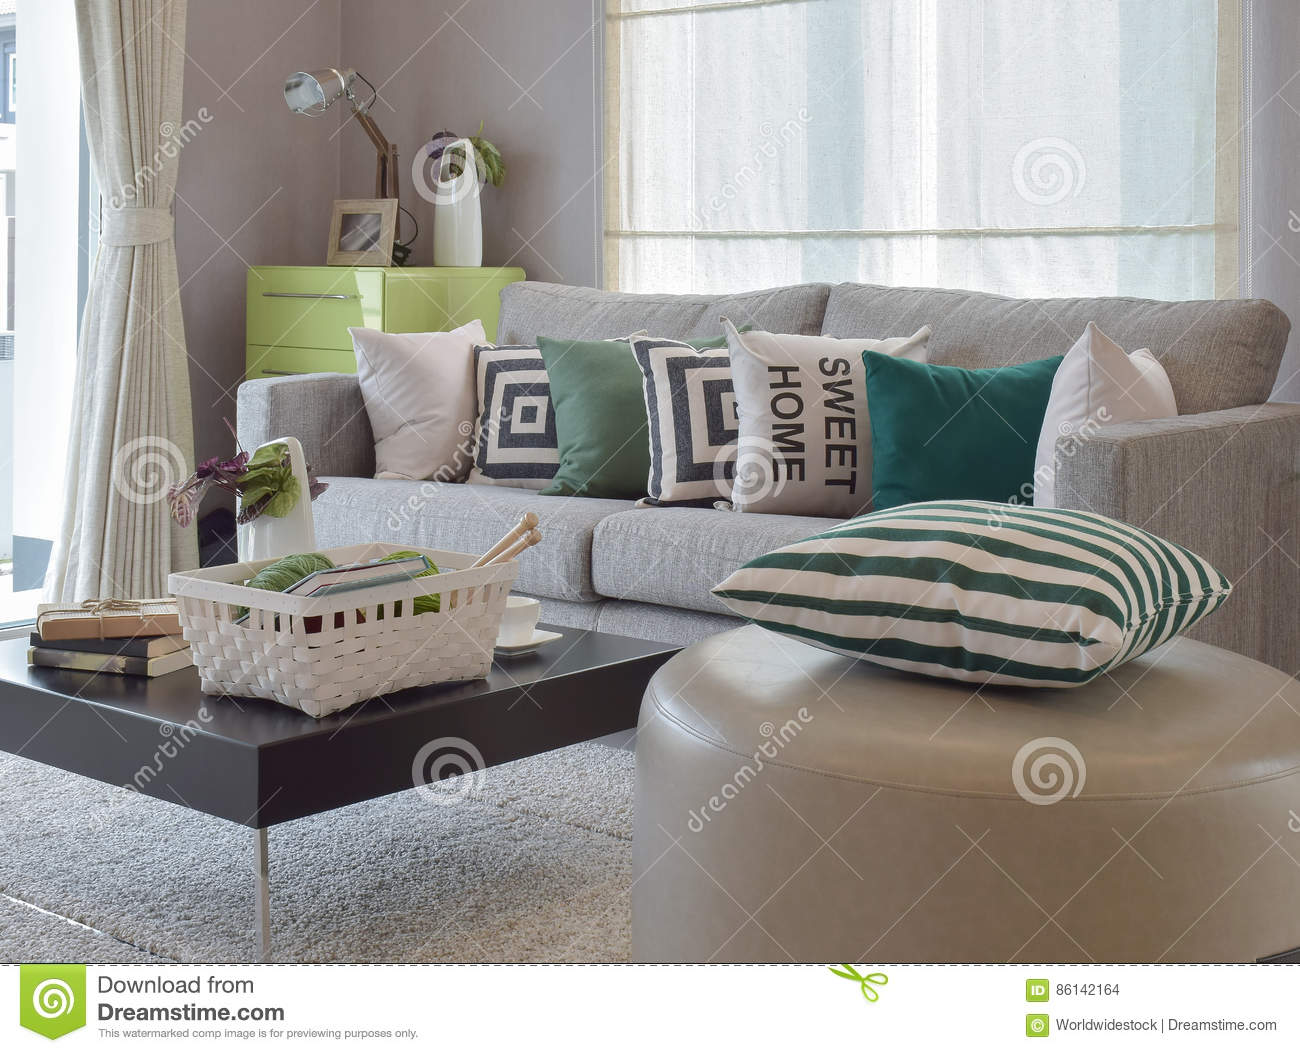 Knitting Set In Cozy Living Room With Gray Sofa And Retro